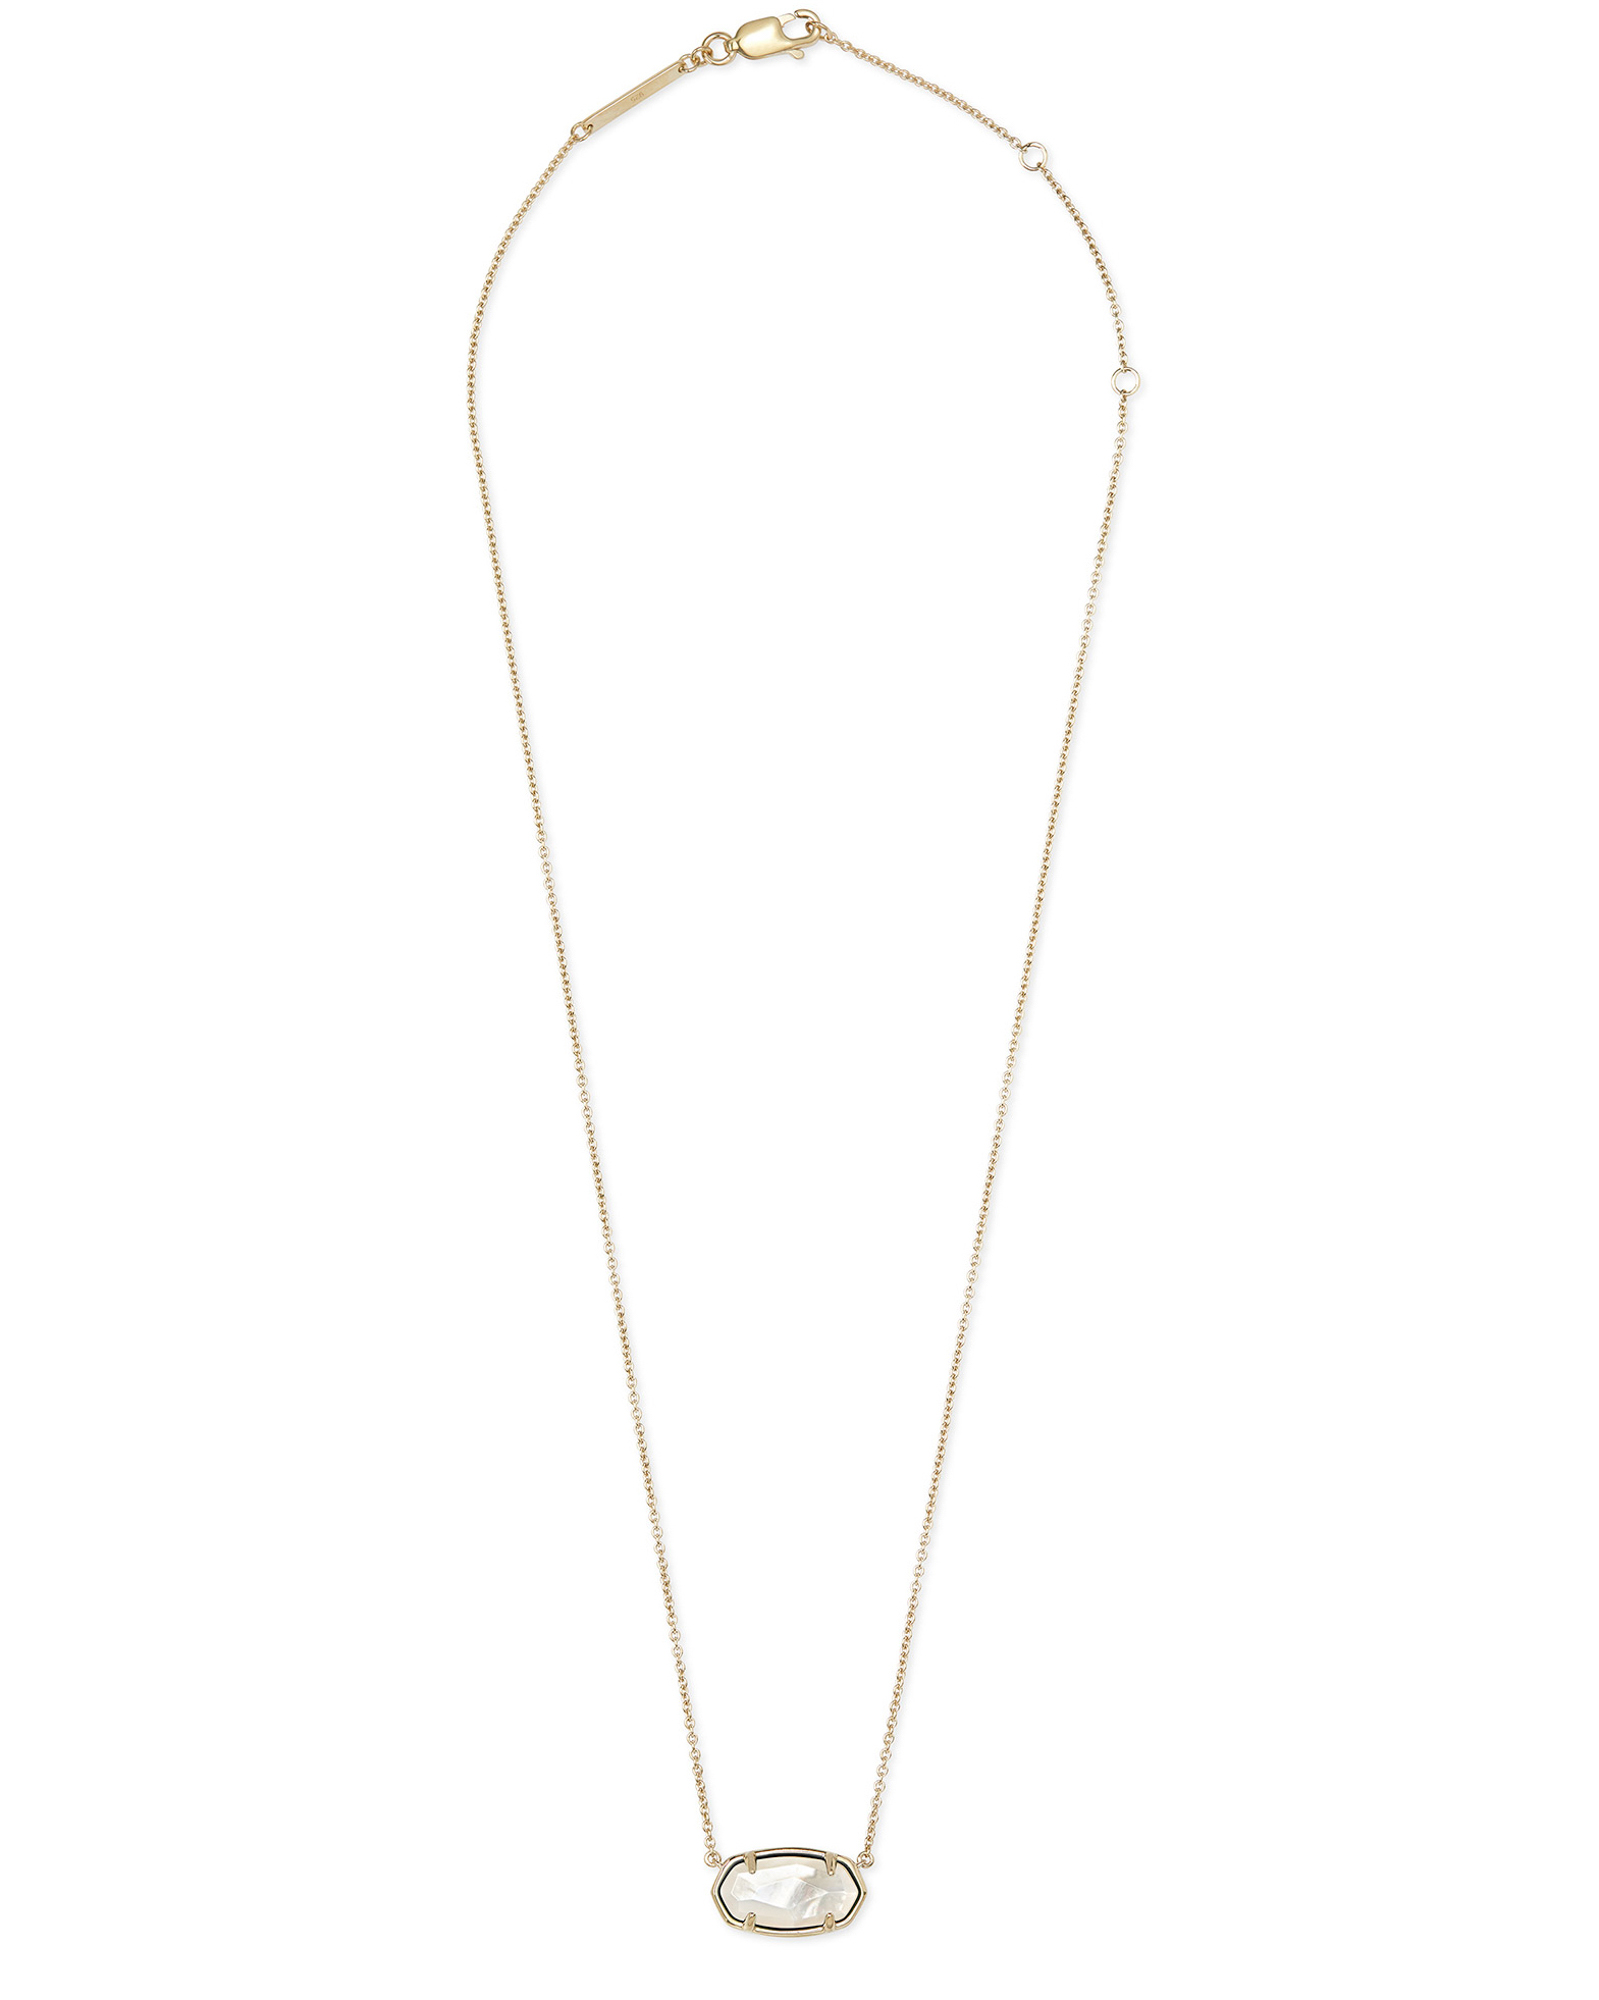 Elisa 18k Gold Vermeil Pendant Necklace